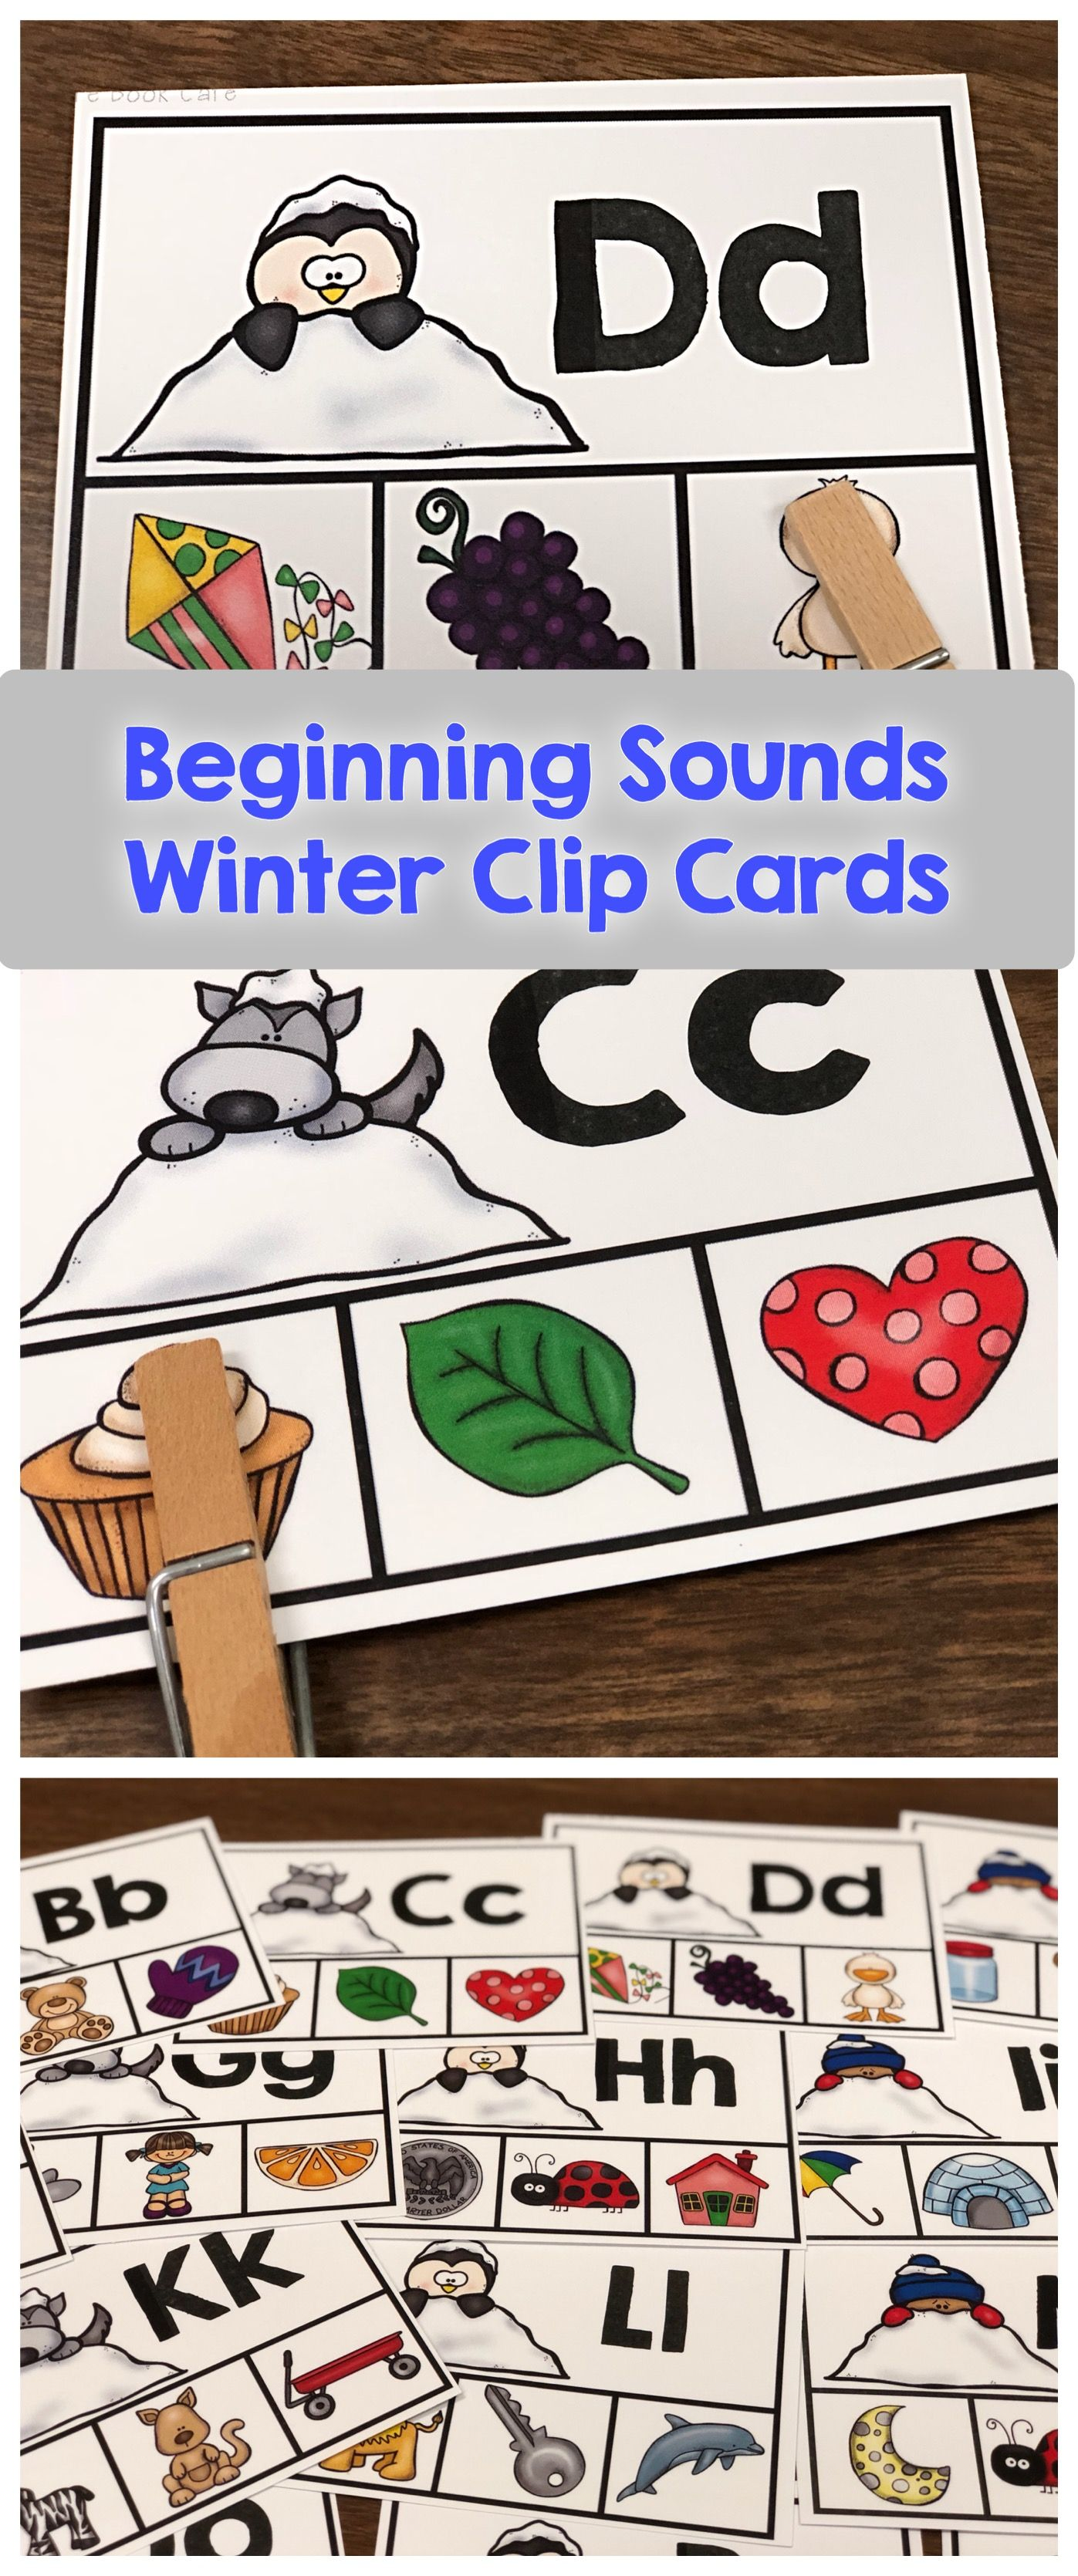 Beginning Sounds Winter Clip Cards